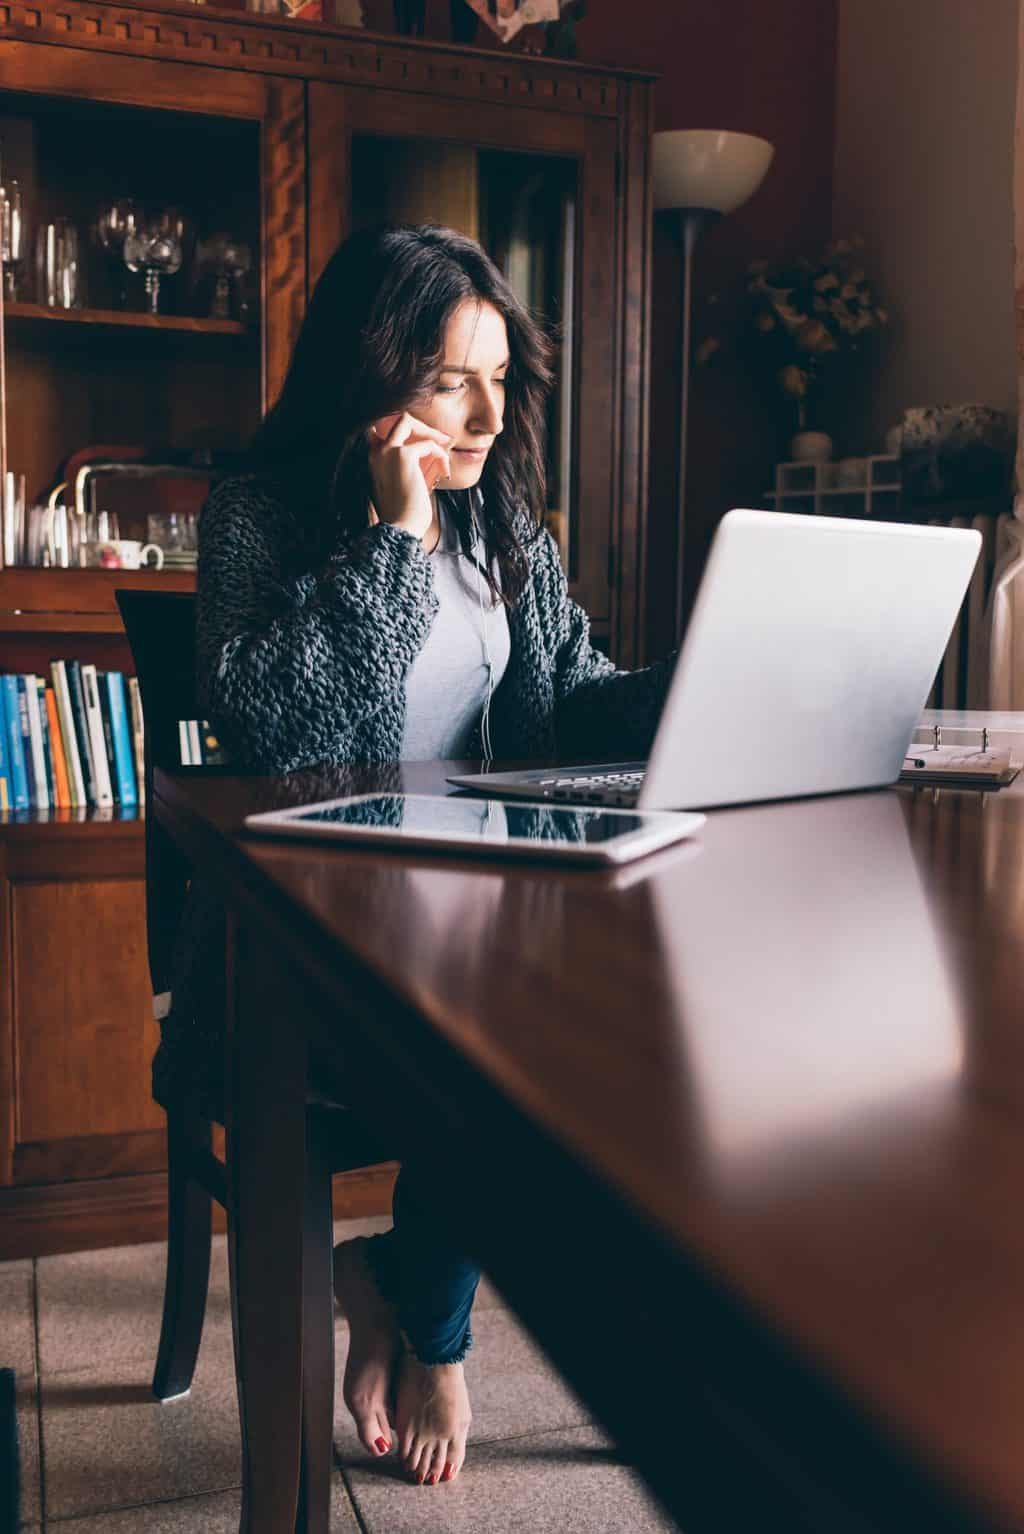 Entrepreneur calling on phone and working on line with a laptop sitting in a desk at home - business, technology, multitasking concept